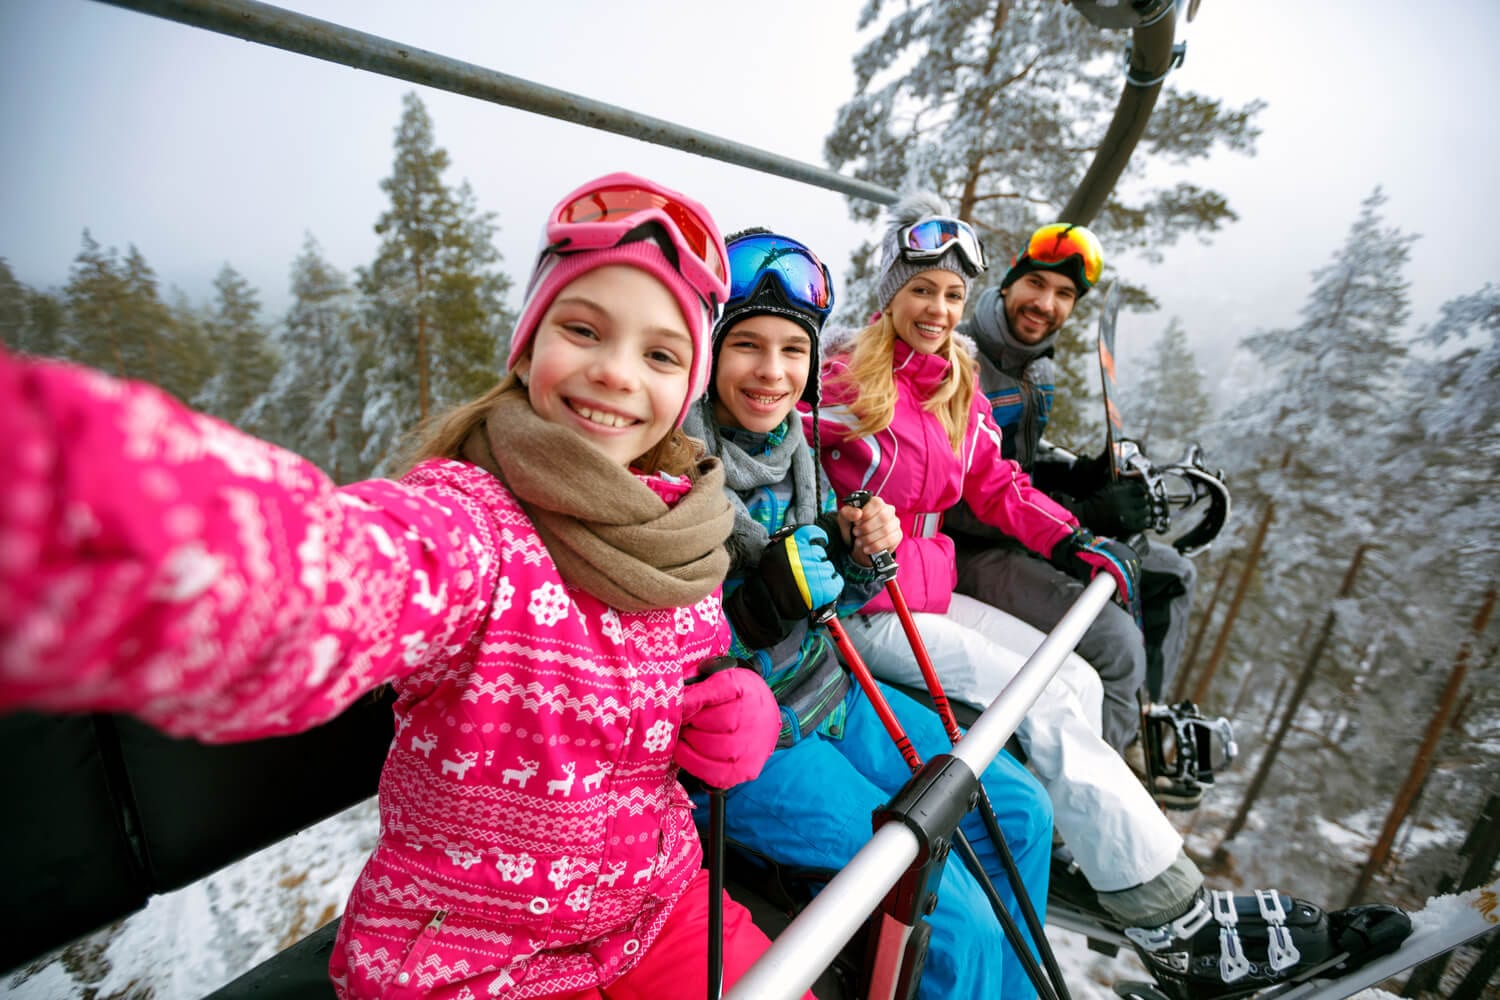 A happy family takes a selfie on a lift while skiing in New Hampshire.